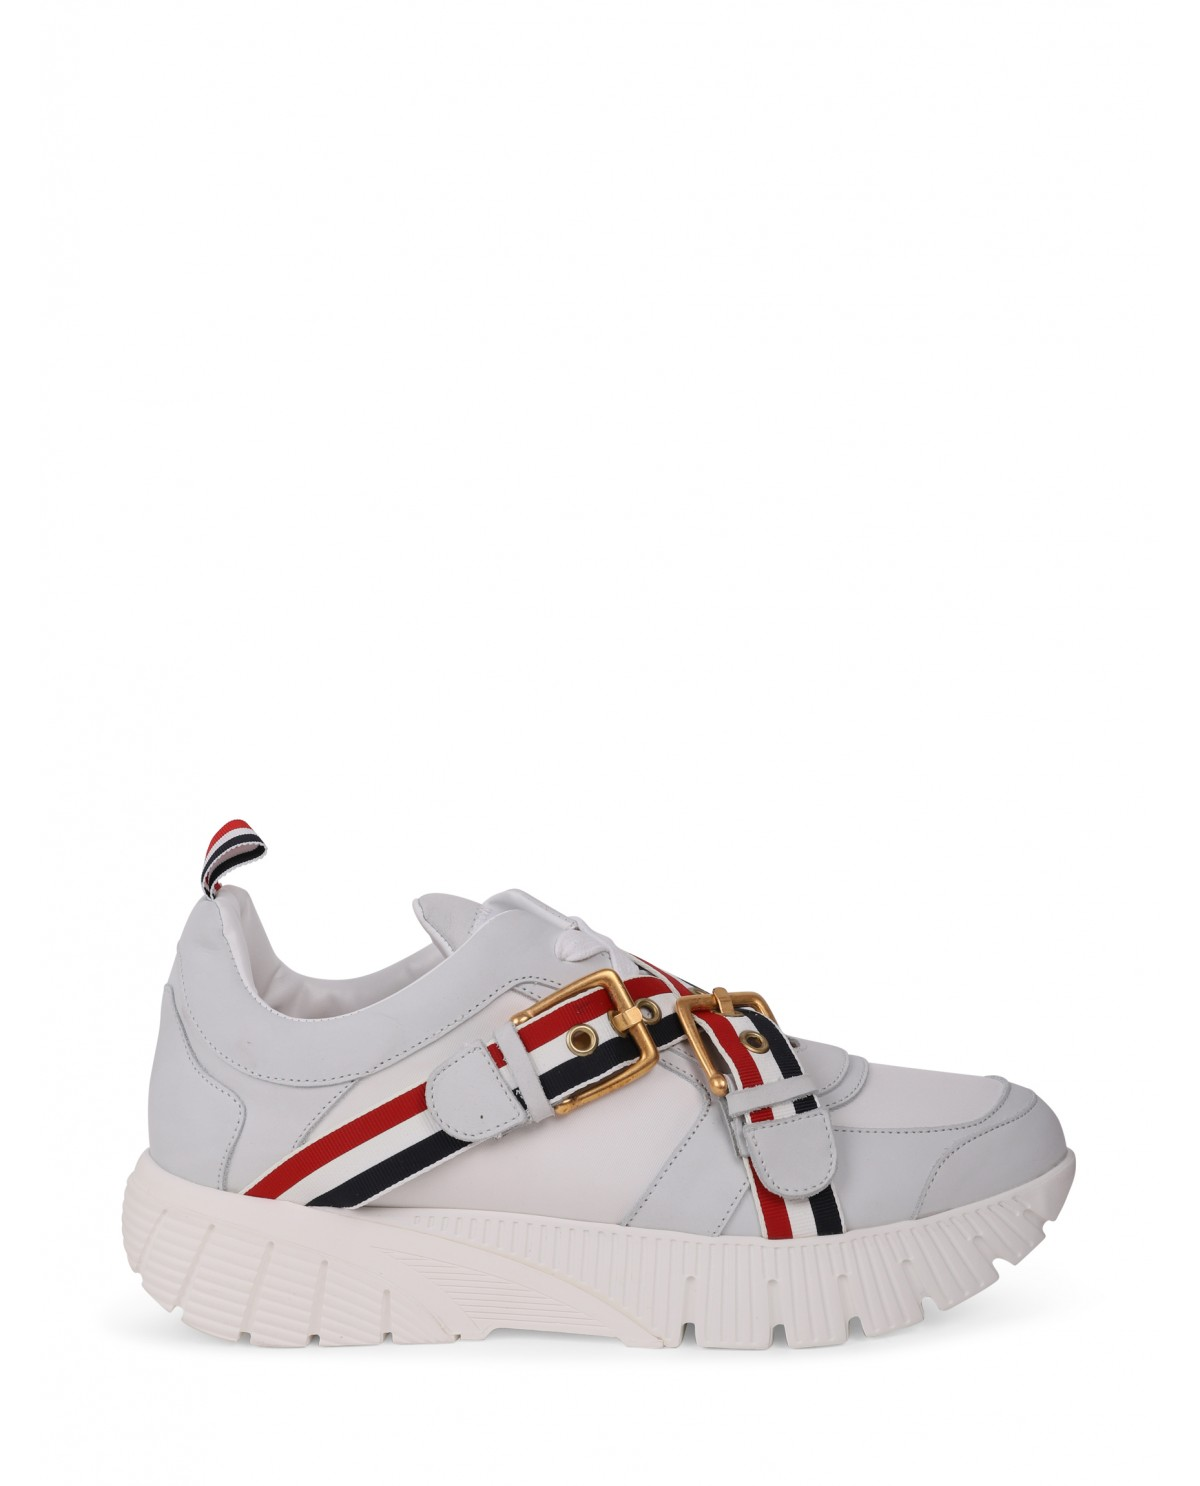 Thom Browne white strap sneakers